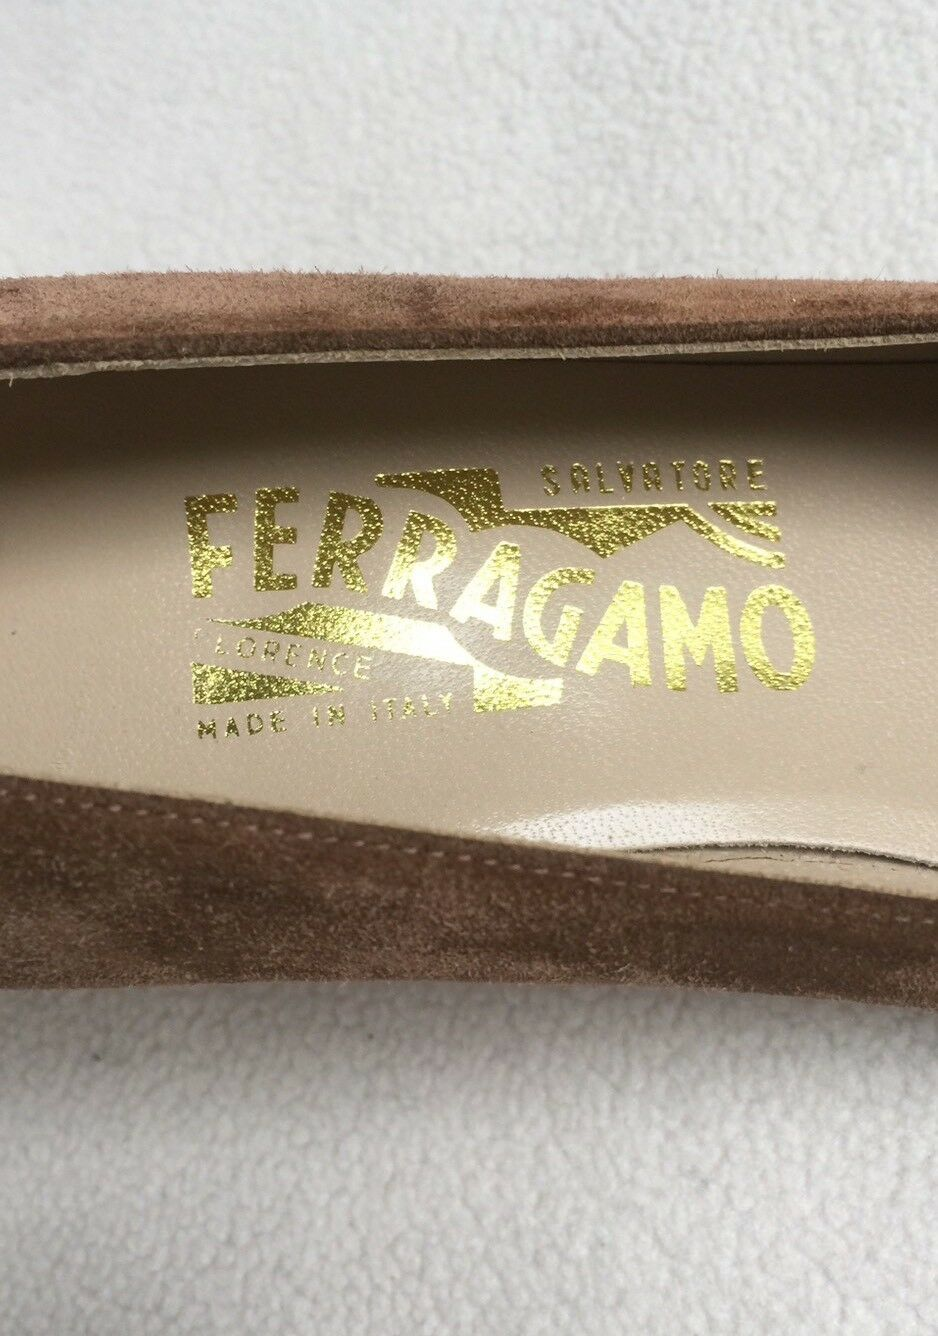 New Ferragamo Suede Tan Light Braun Suede Ferragamo Pumps Heels  sz 8 AA 1960be